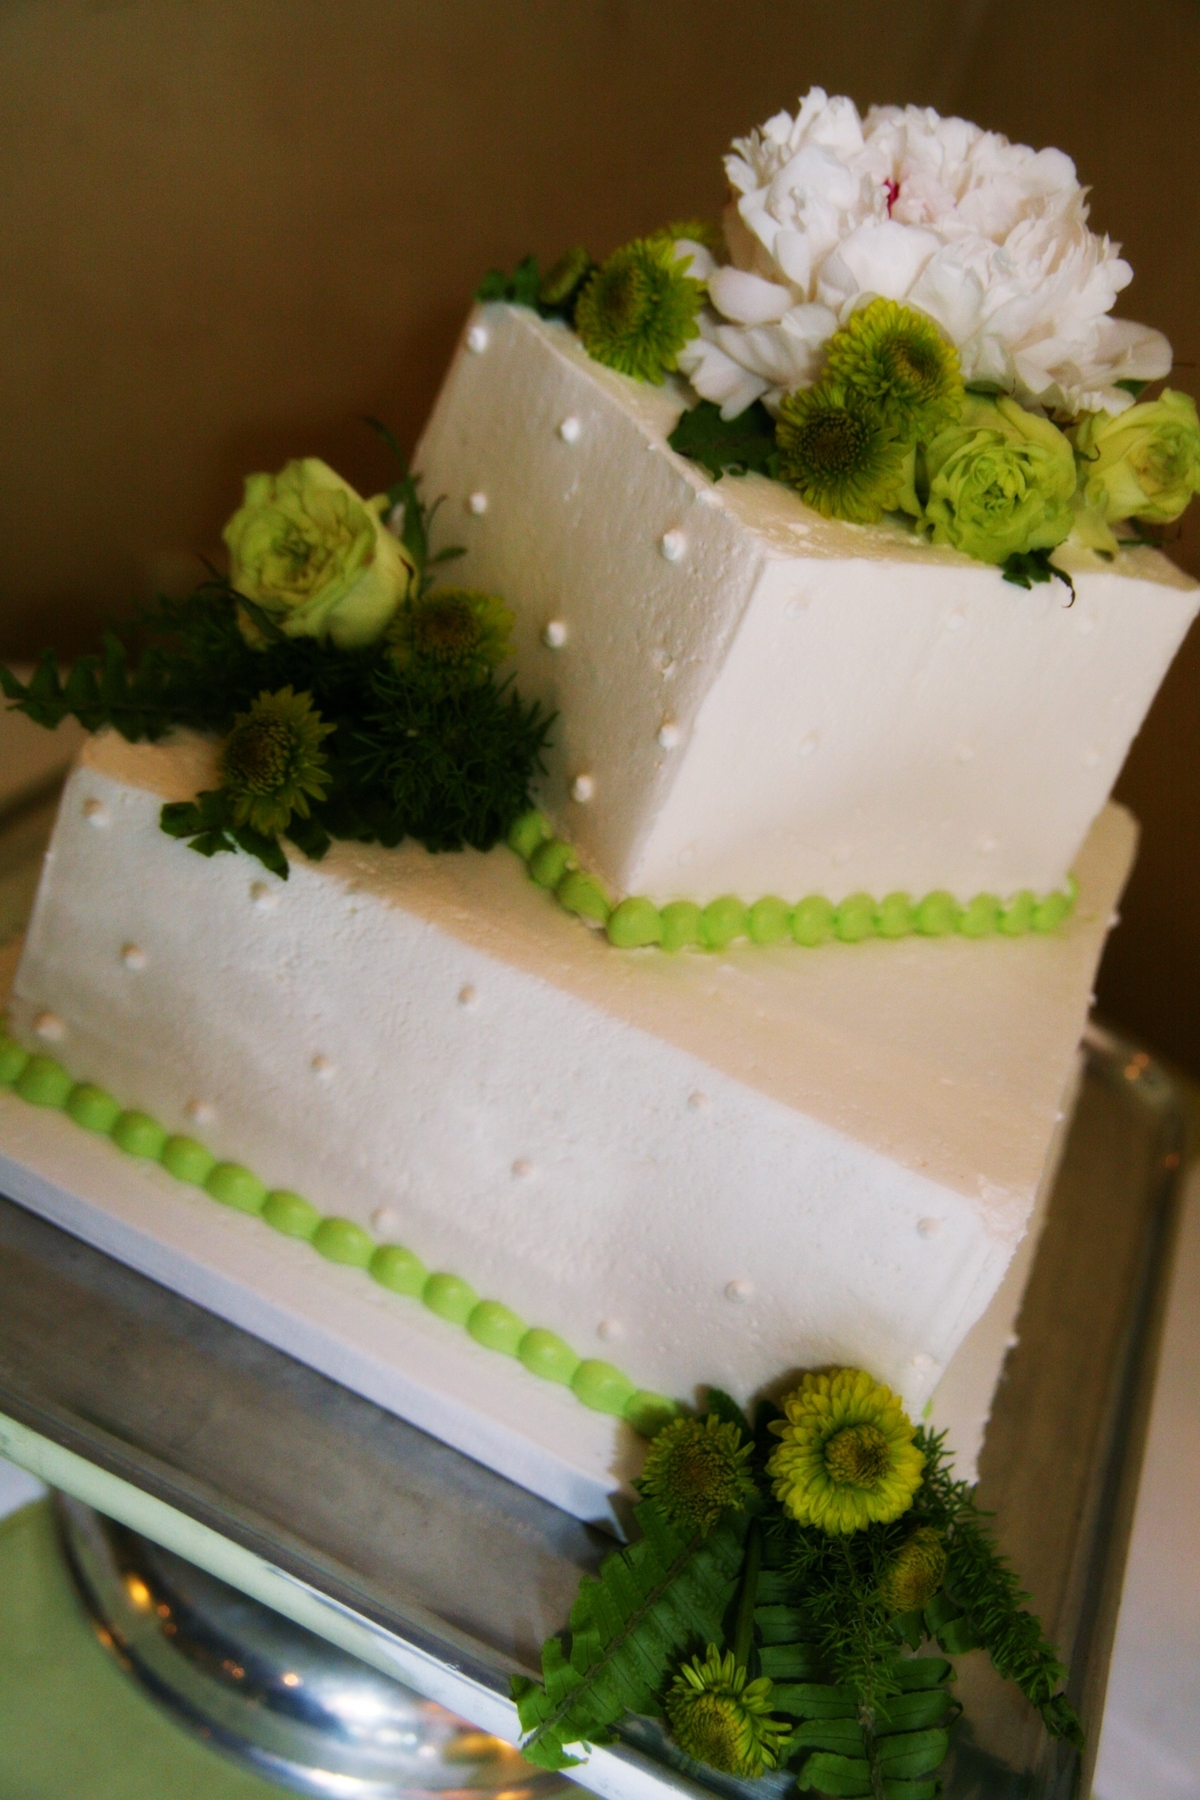 Flowers & Decor, Cakes, green, cake, Flowers, Cake cutting